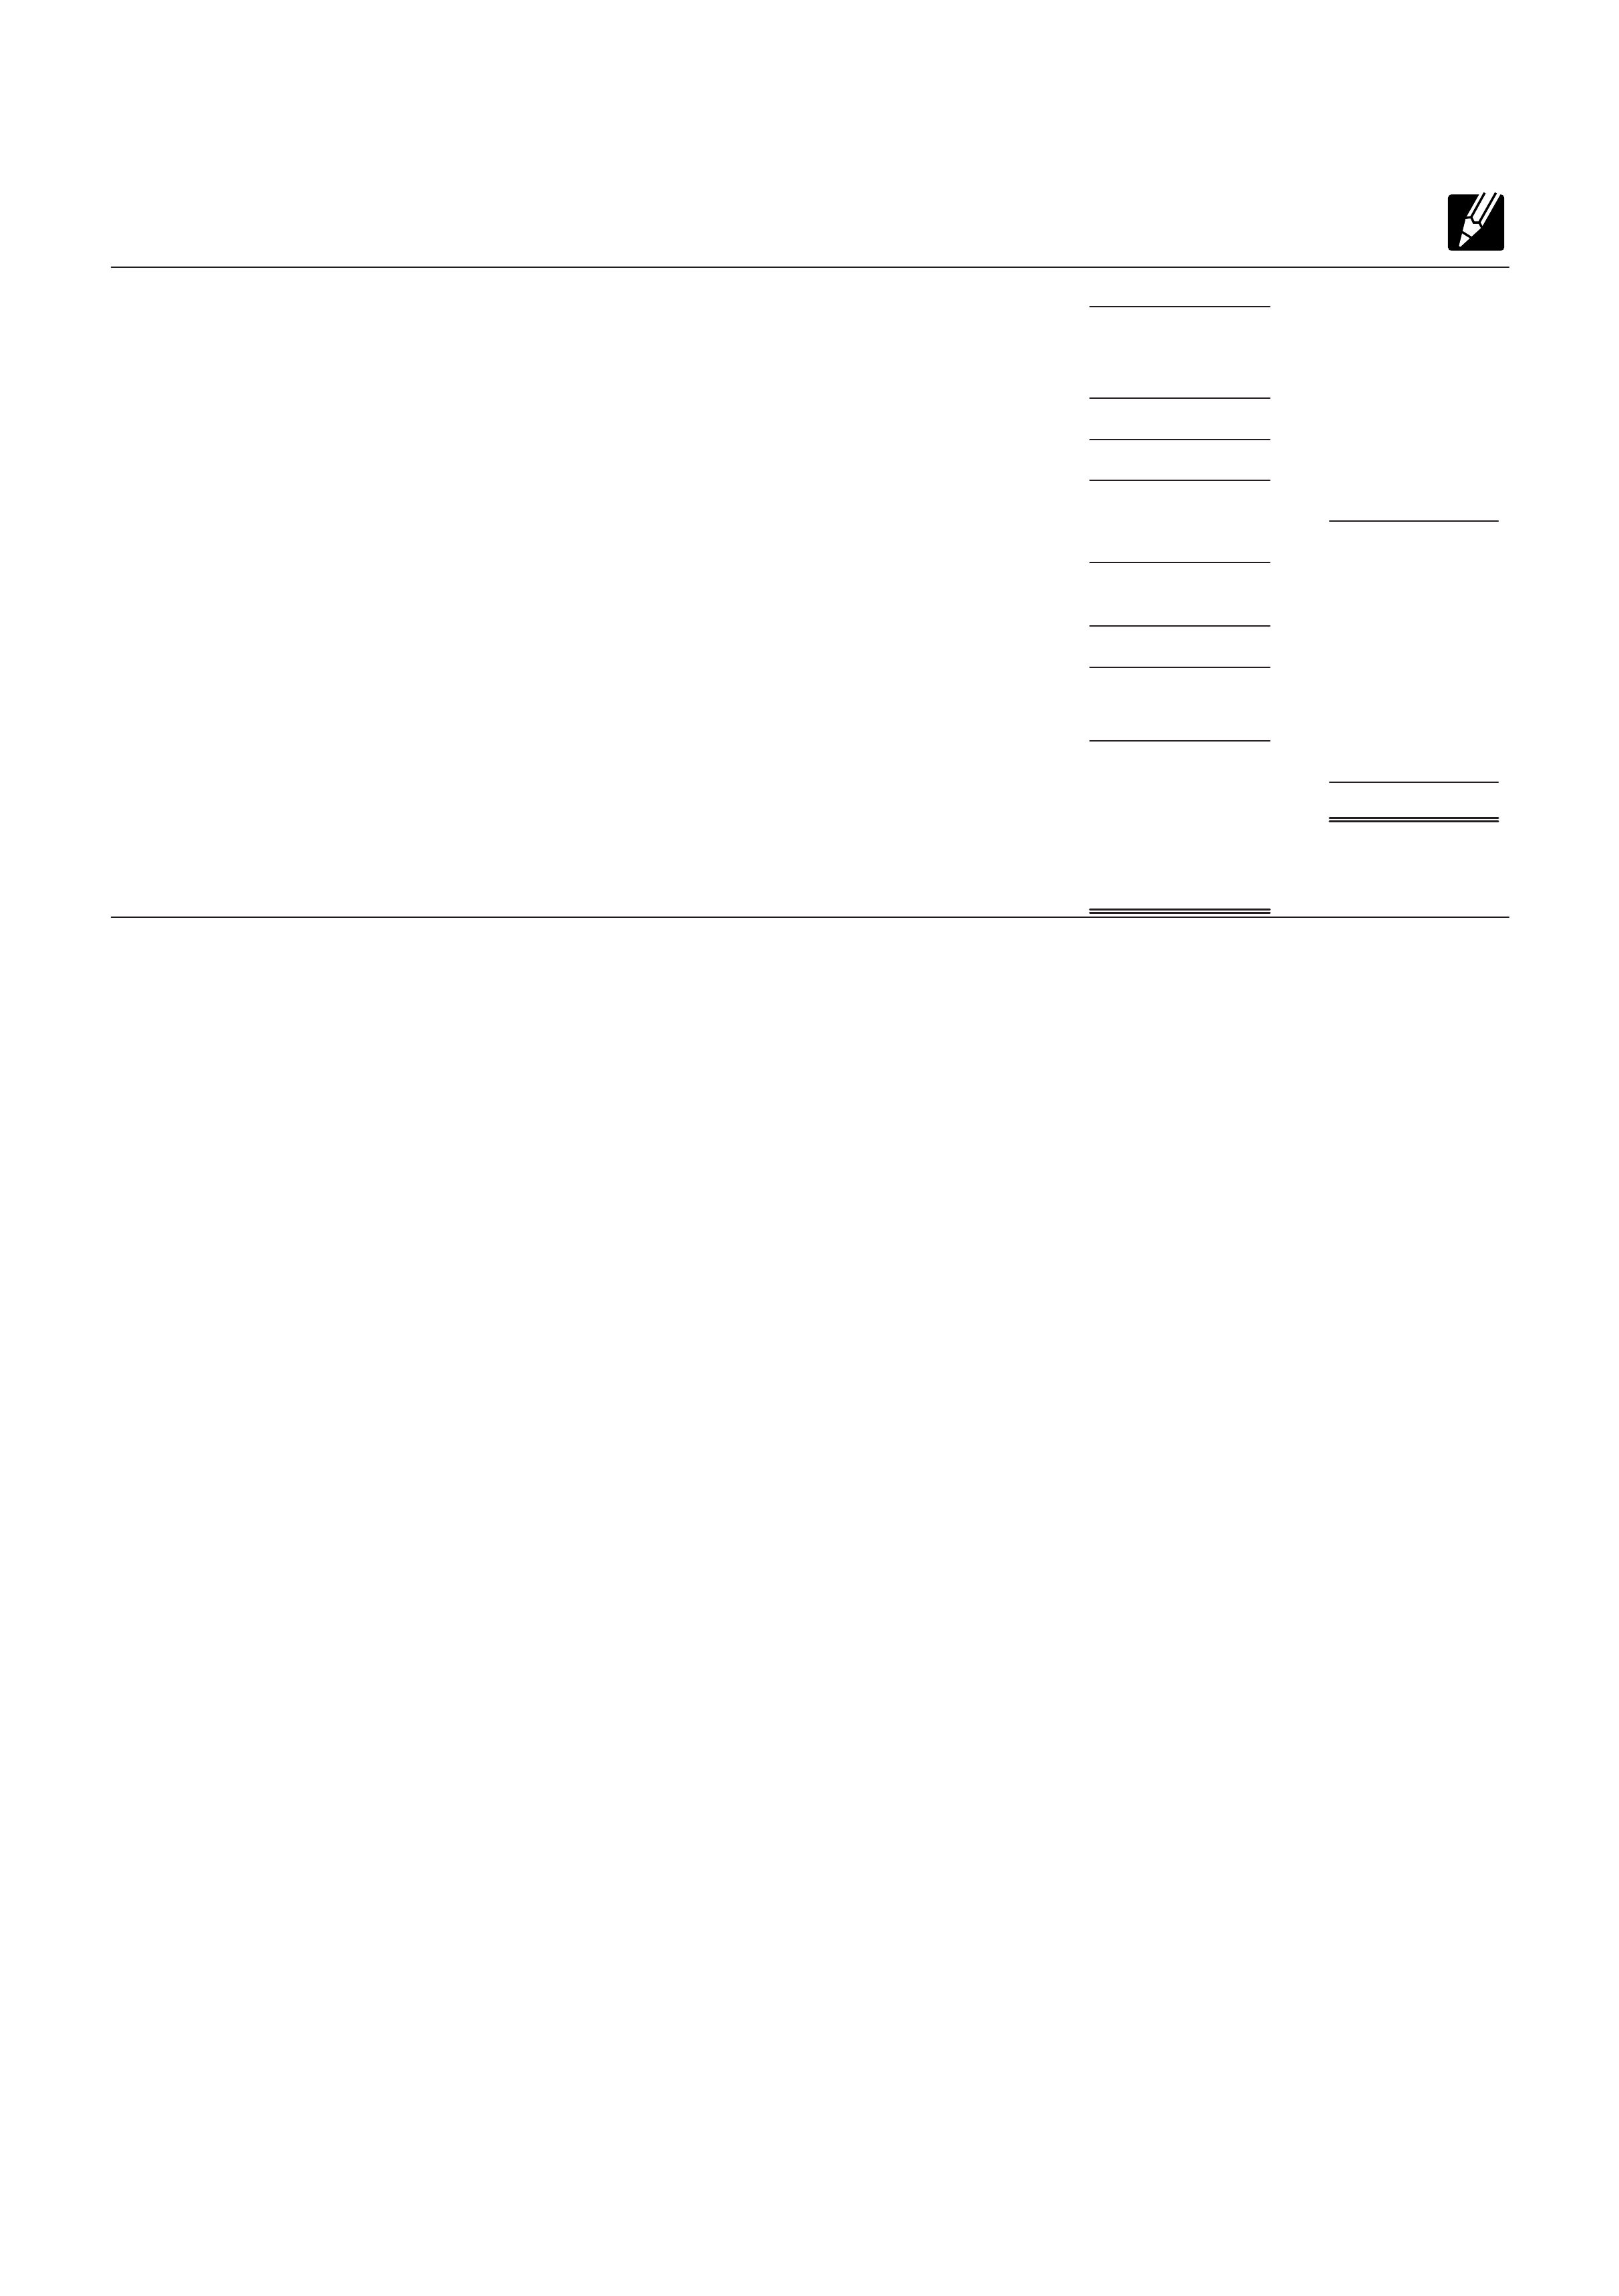 2015 Form 1040-ES Estimated Tax for Individual Free Download